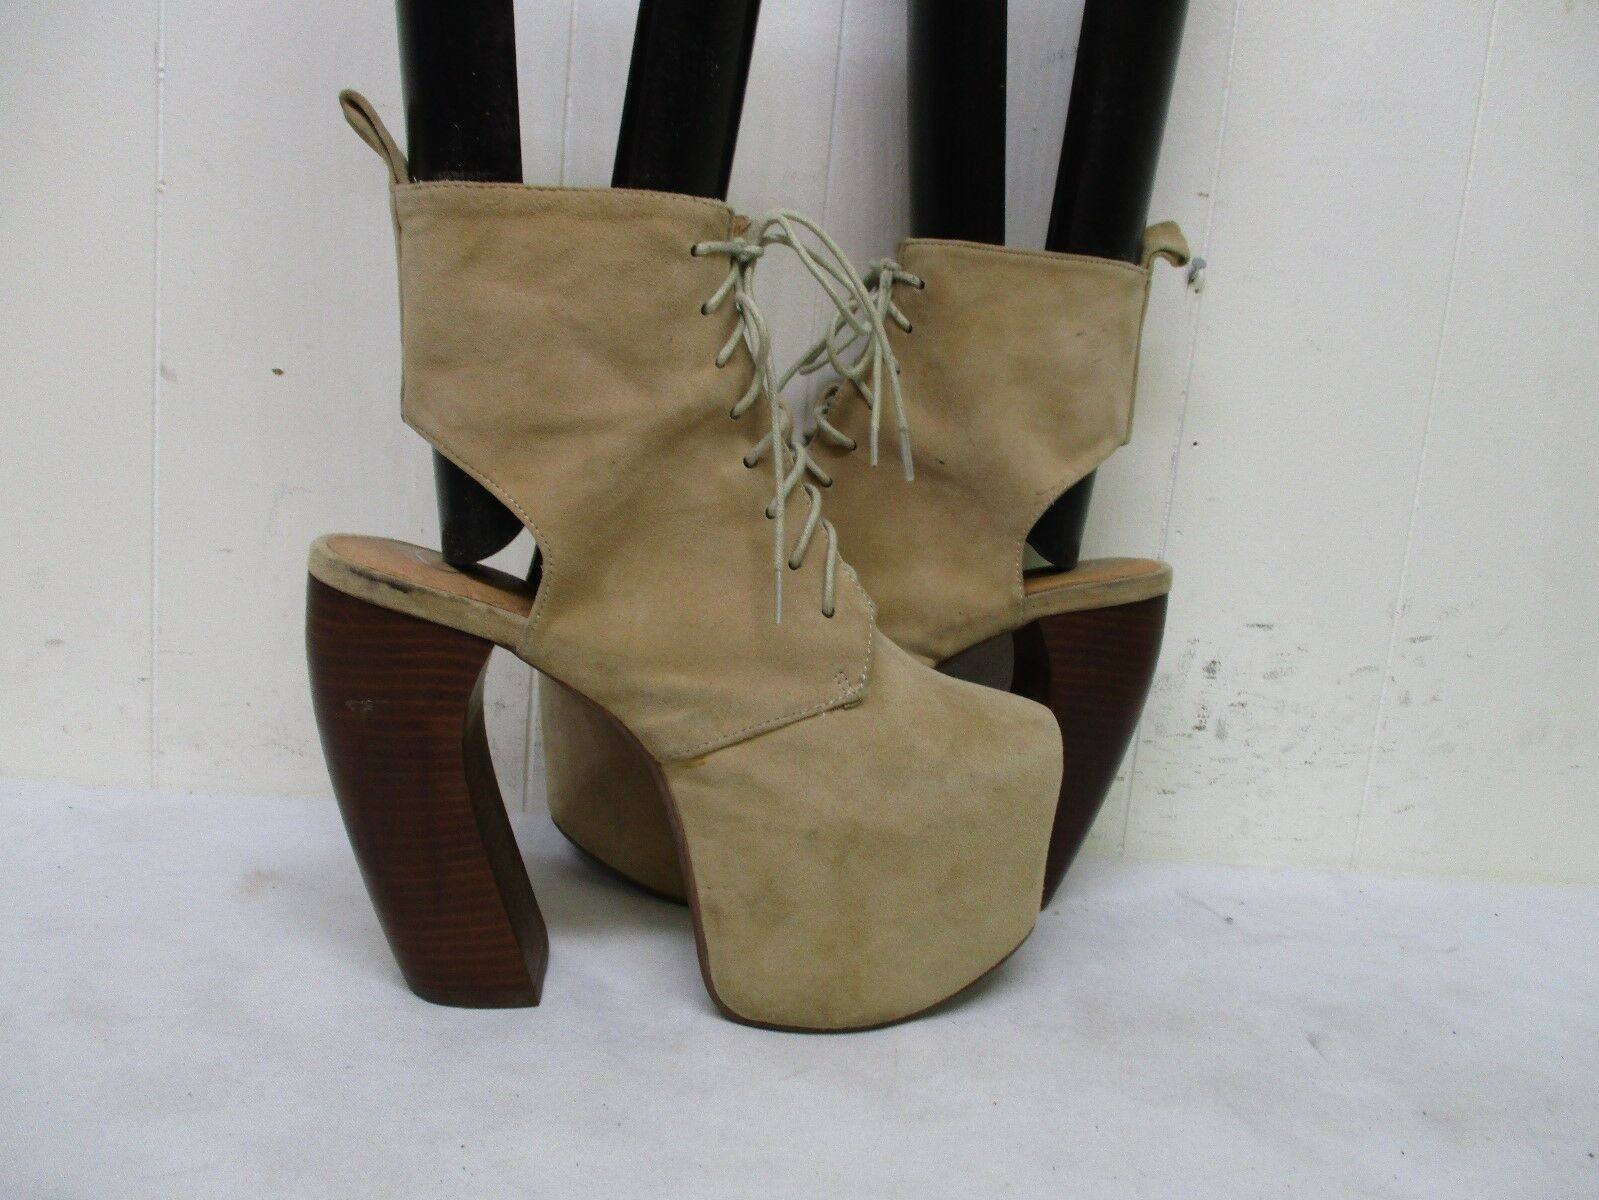 Jeffrey Ankle Campbell Havana Last Beige Suede Leather High Heel Ankle Jeffrey Boots Size 7 M 23d7f1